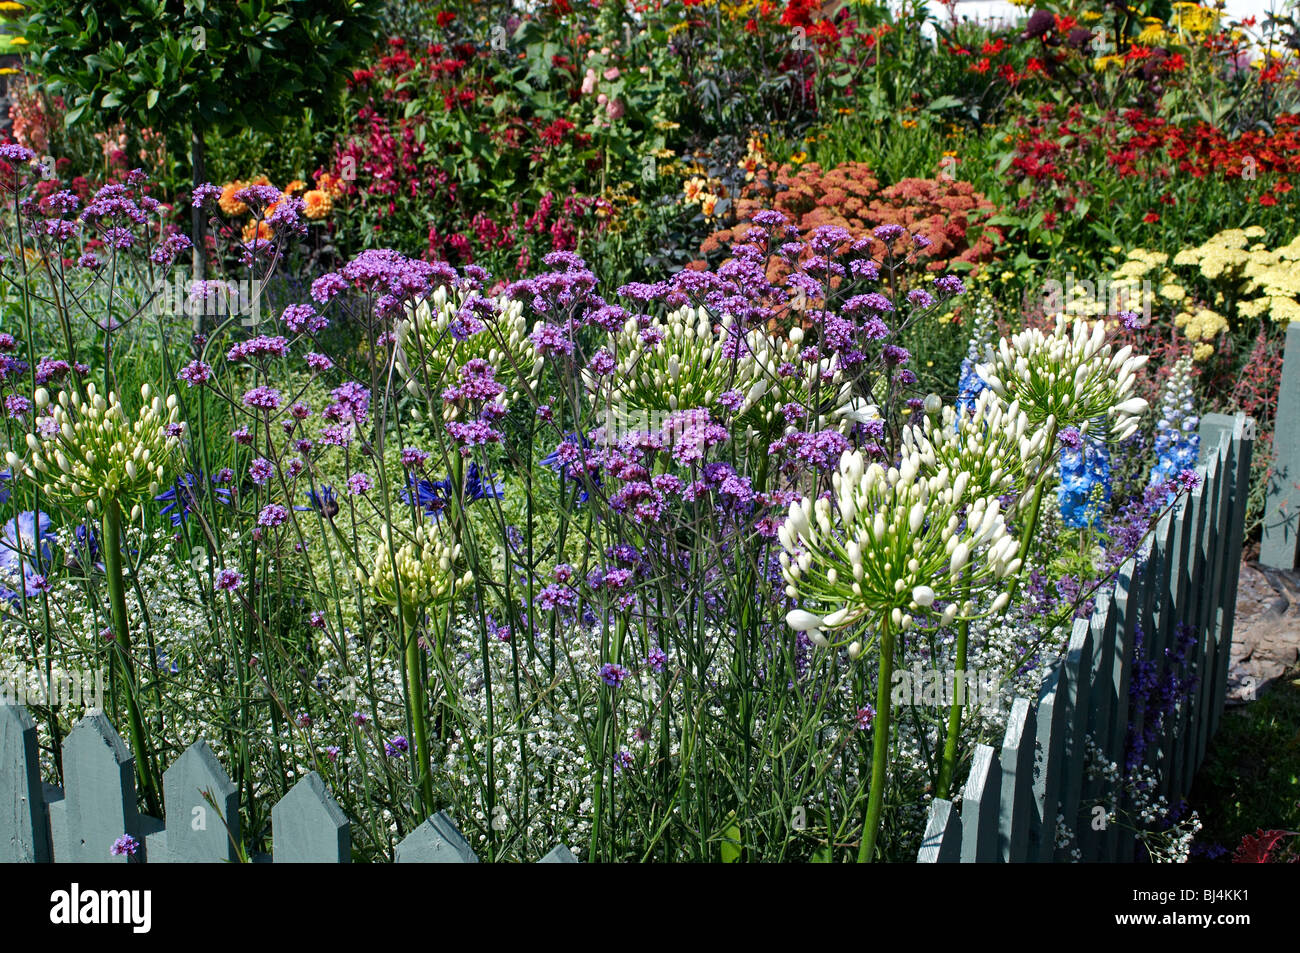 A colourful herbaceous flower border in a English country garden - Stock Image